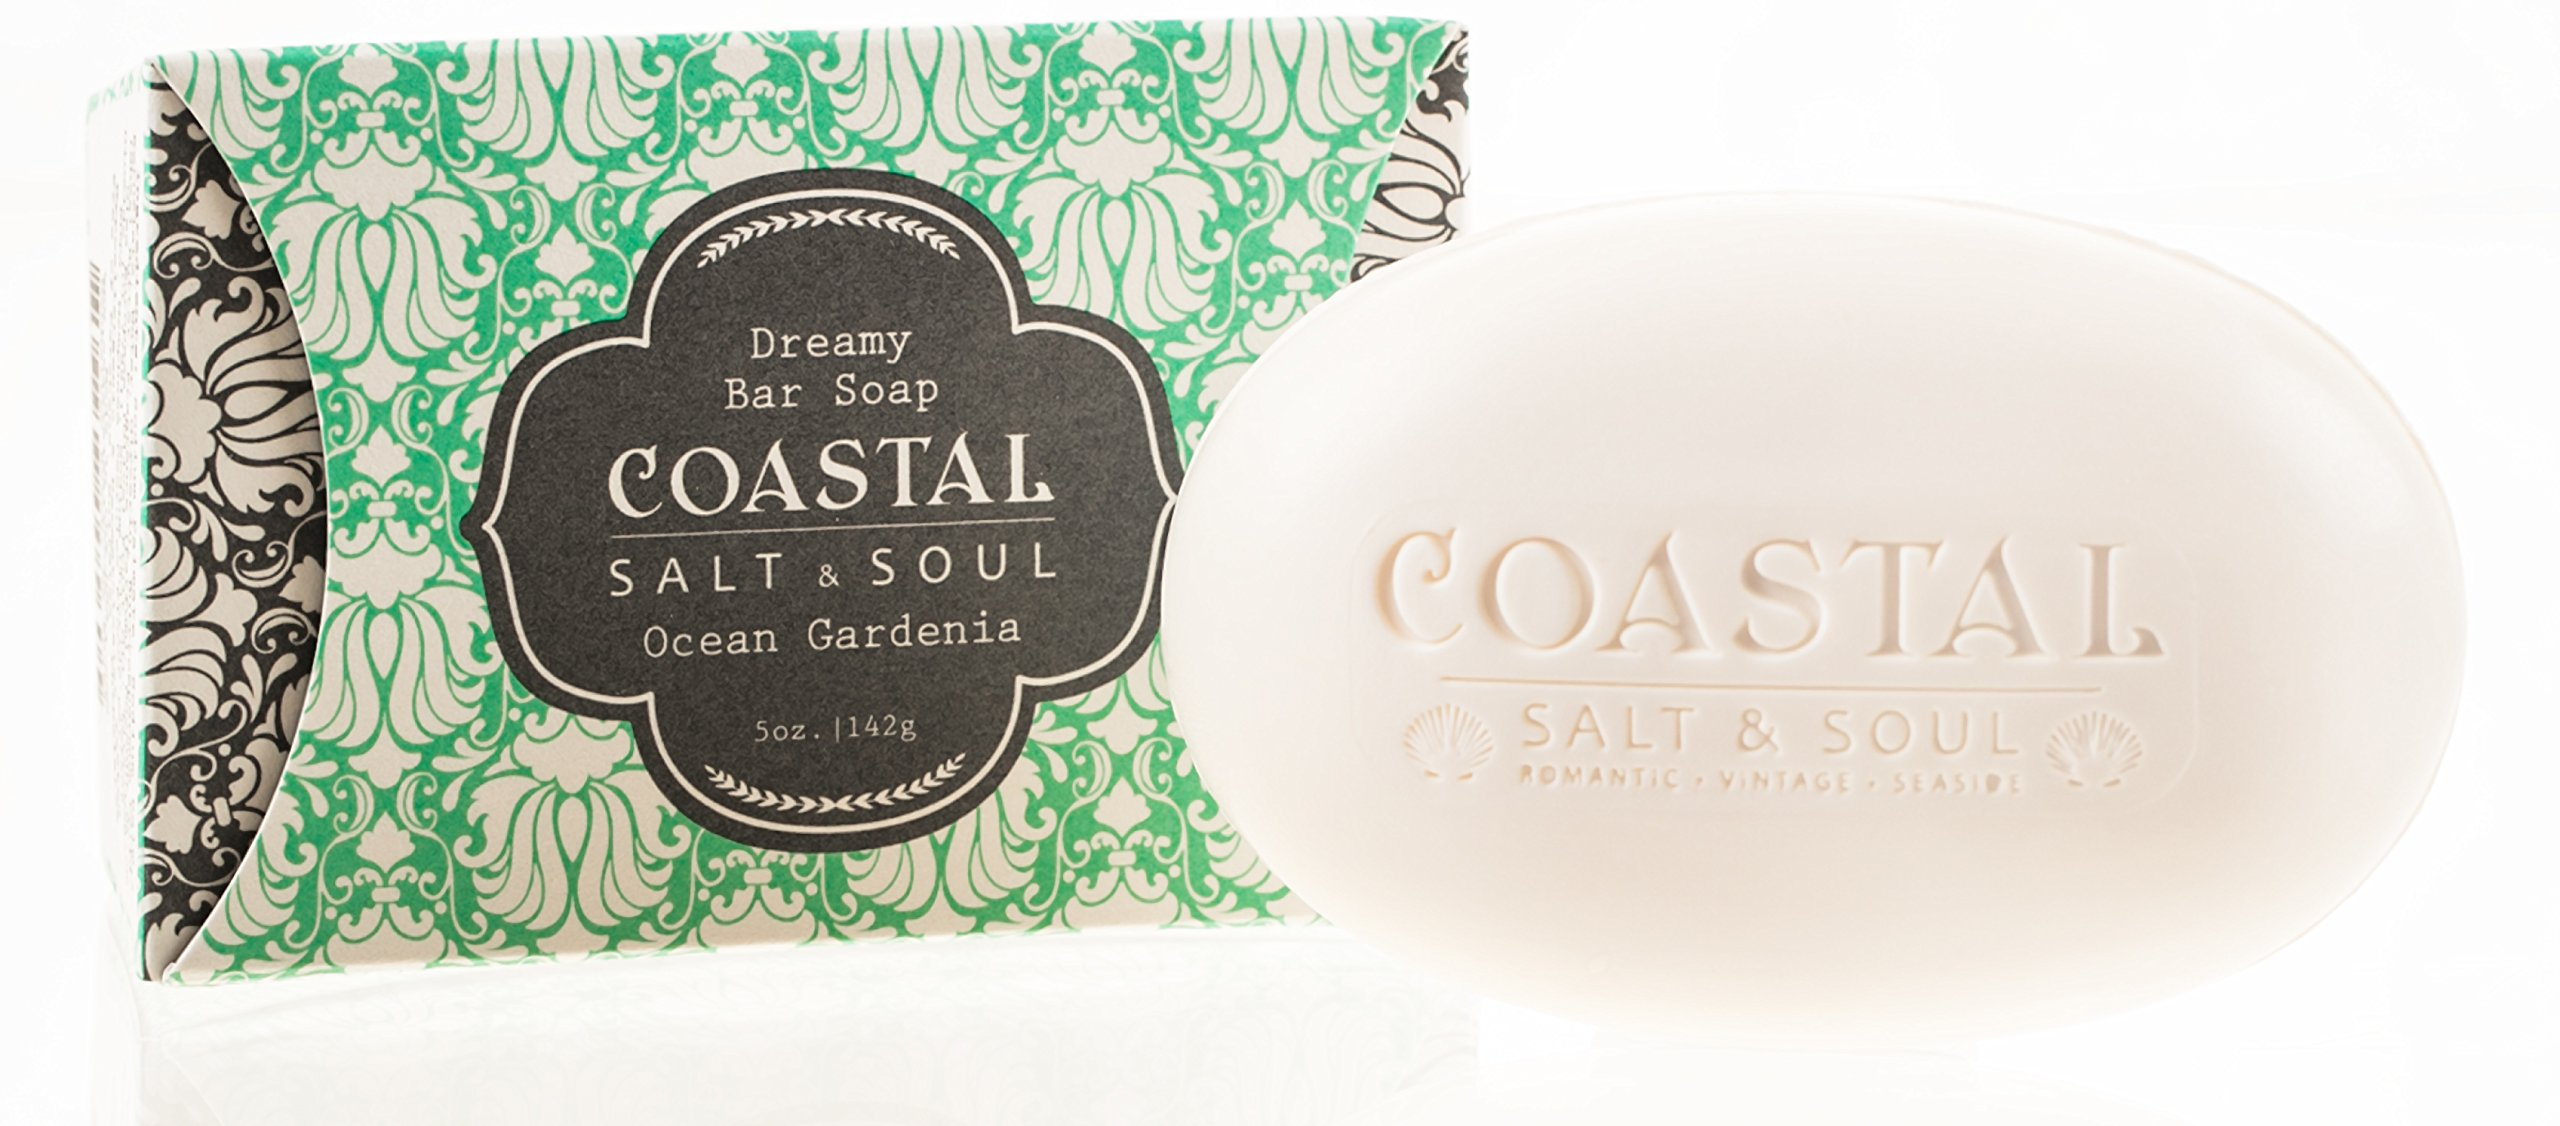 Coastal Salt & Soul, Natural Bar Soap, Super Hydration, with Pure Shea Butter, Olive Fruit Oil & Blue Lotus Extract, 5.0 oz., Ocean Gardenia